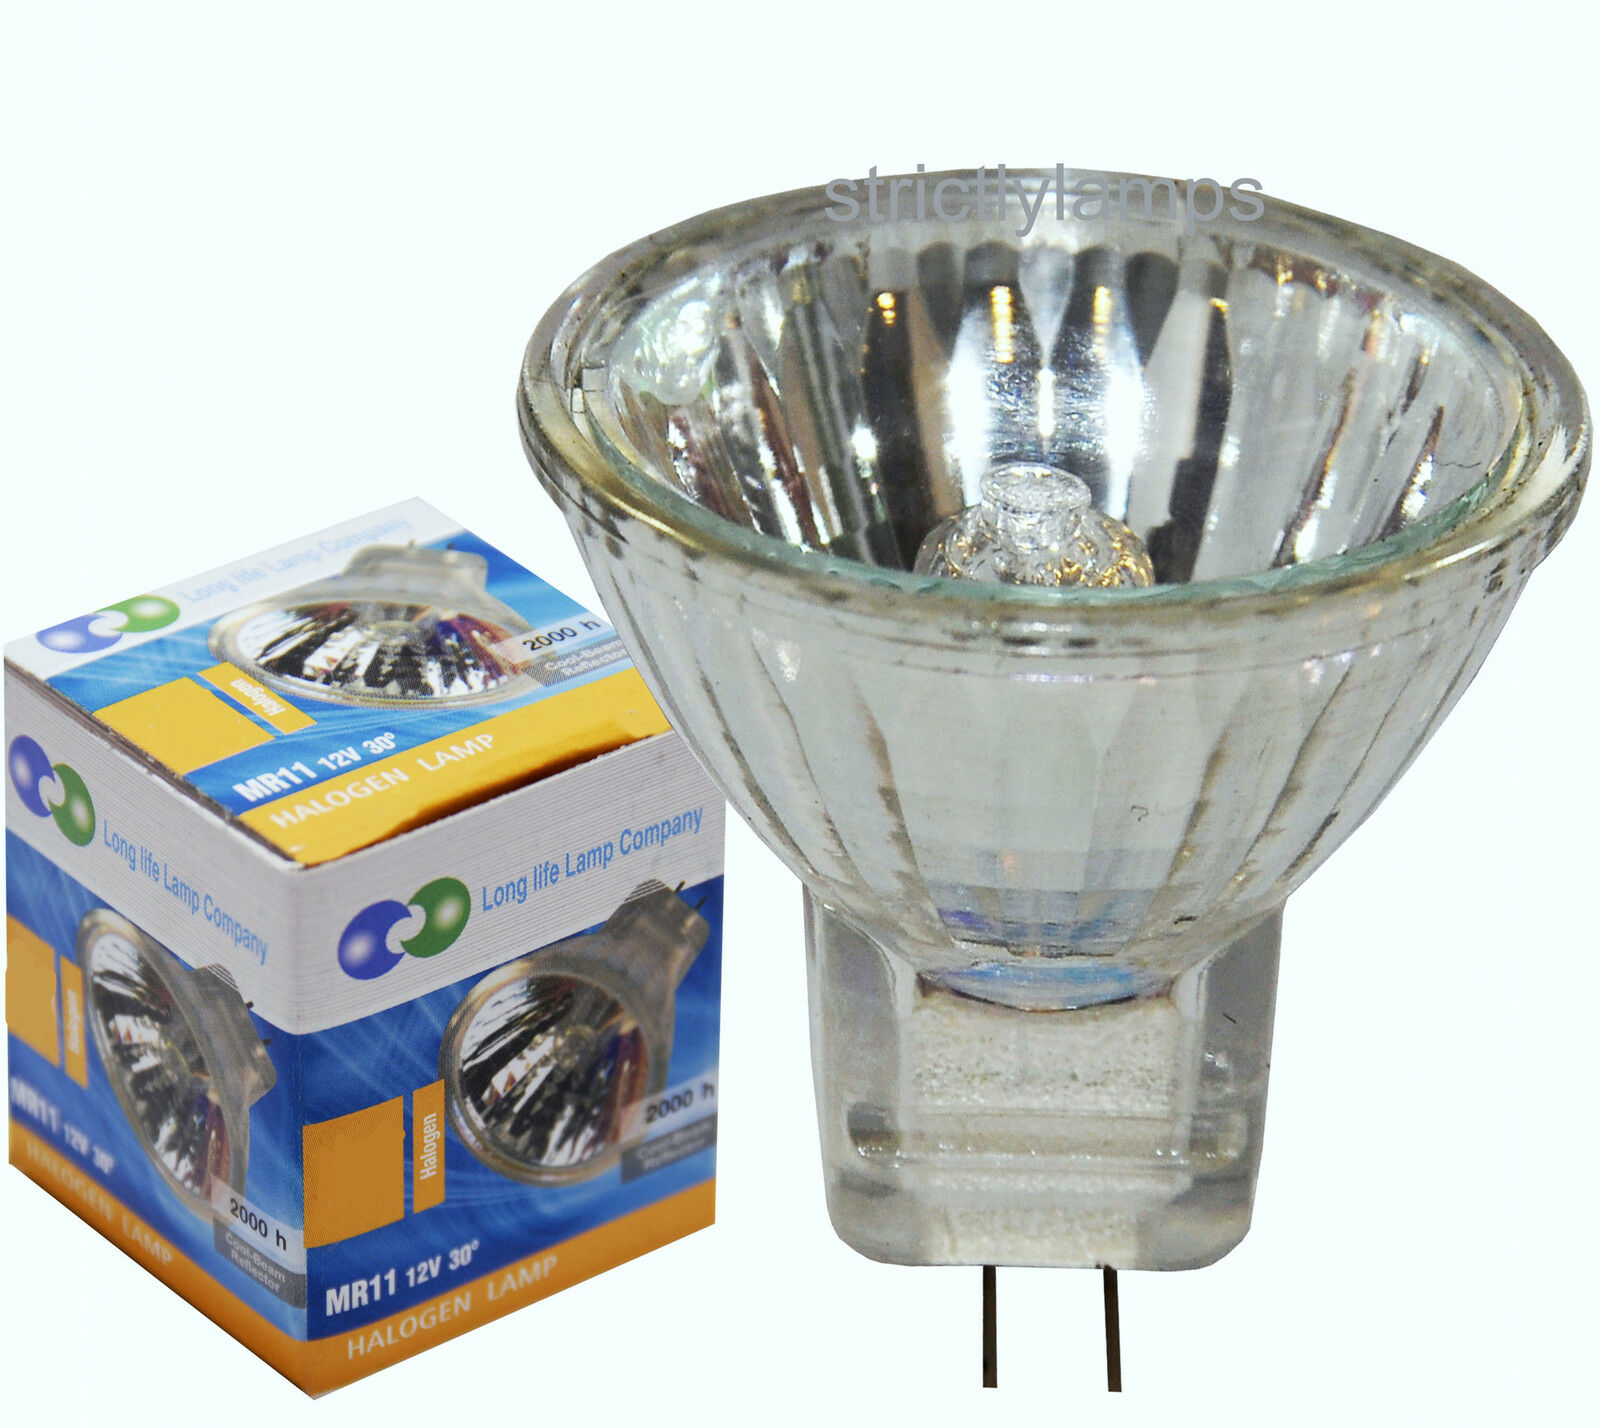 long life mr11 halogen light bulbs 12v lamp 5w or 7w or 10w or 20w or 35w ebay. Black Bedroom Furniture Sets. Home Design Ideas